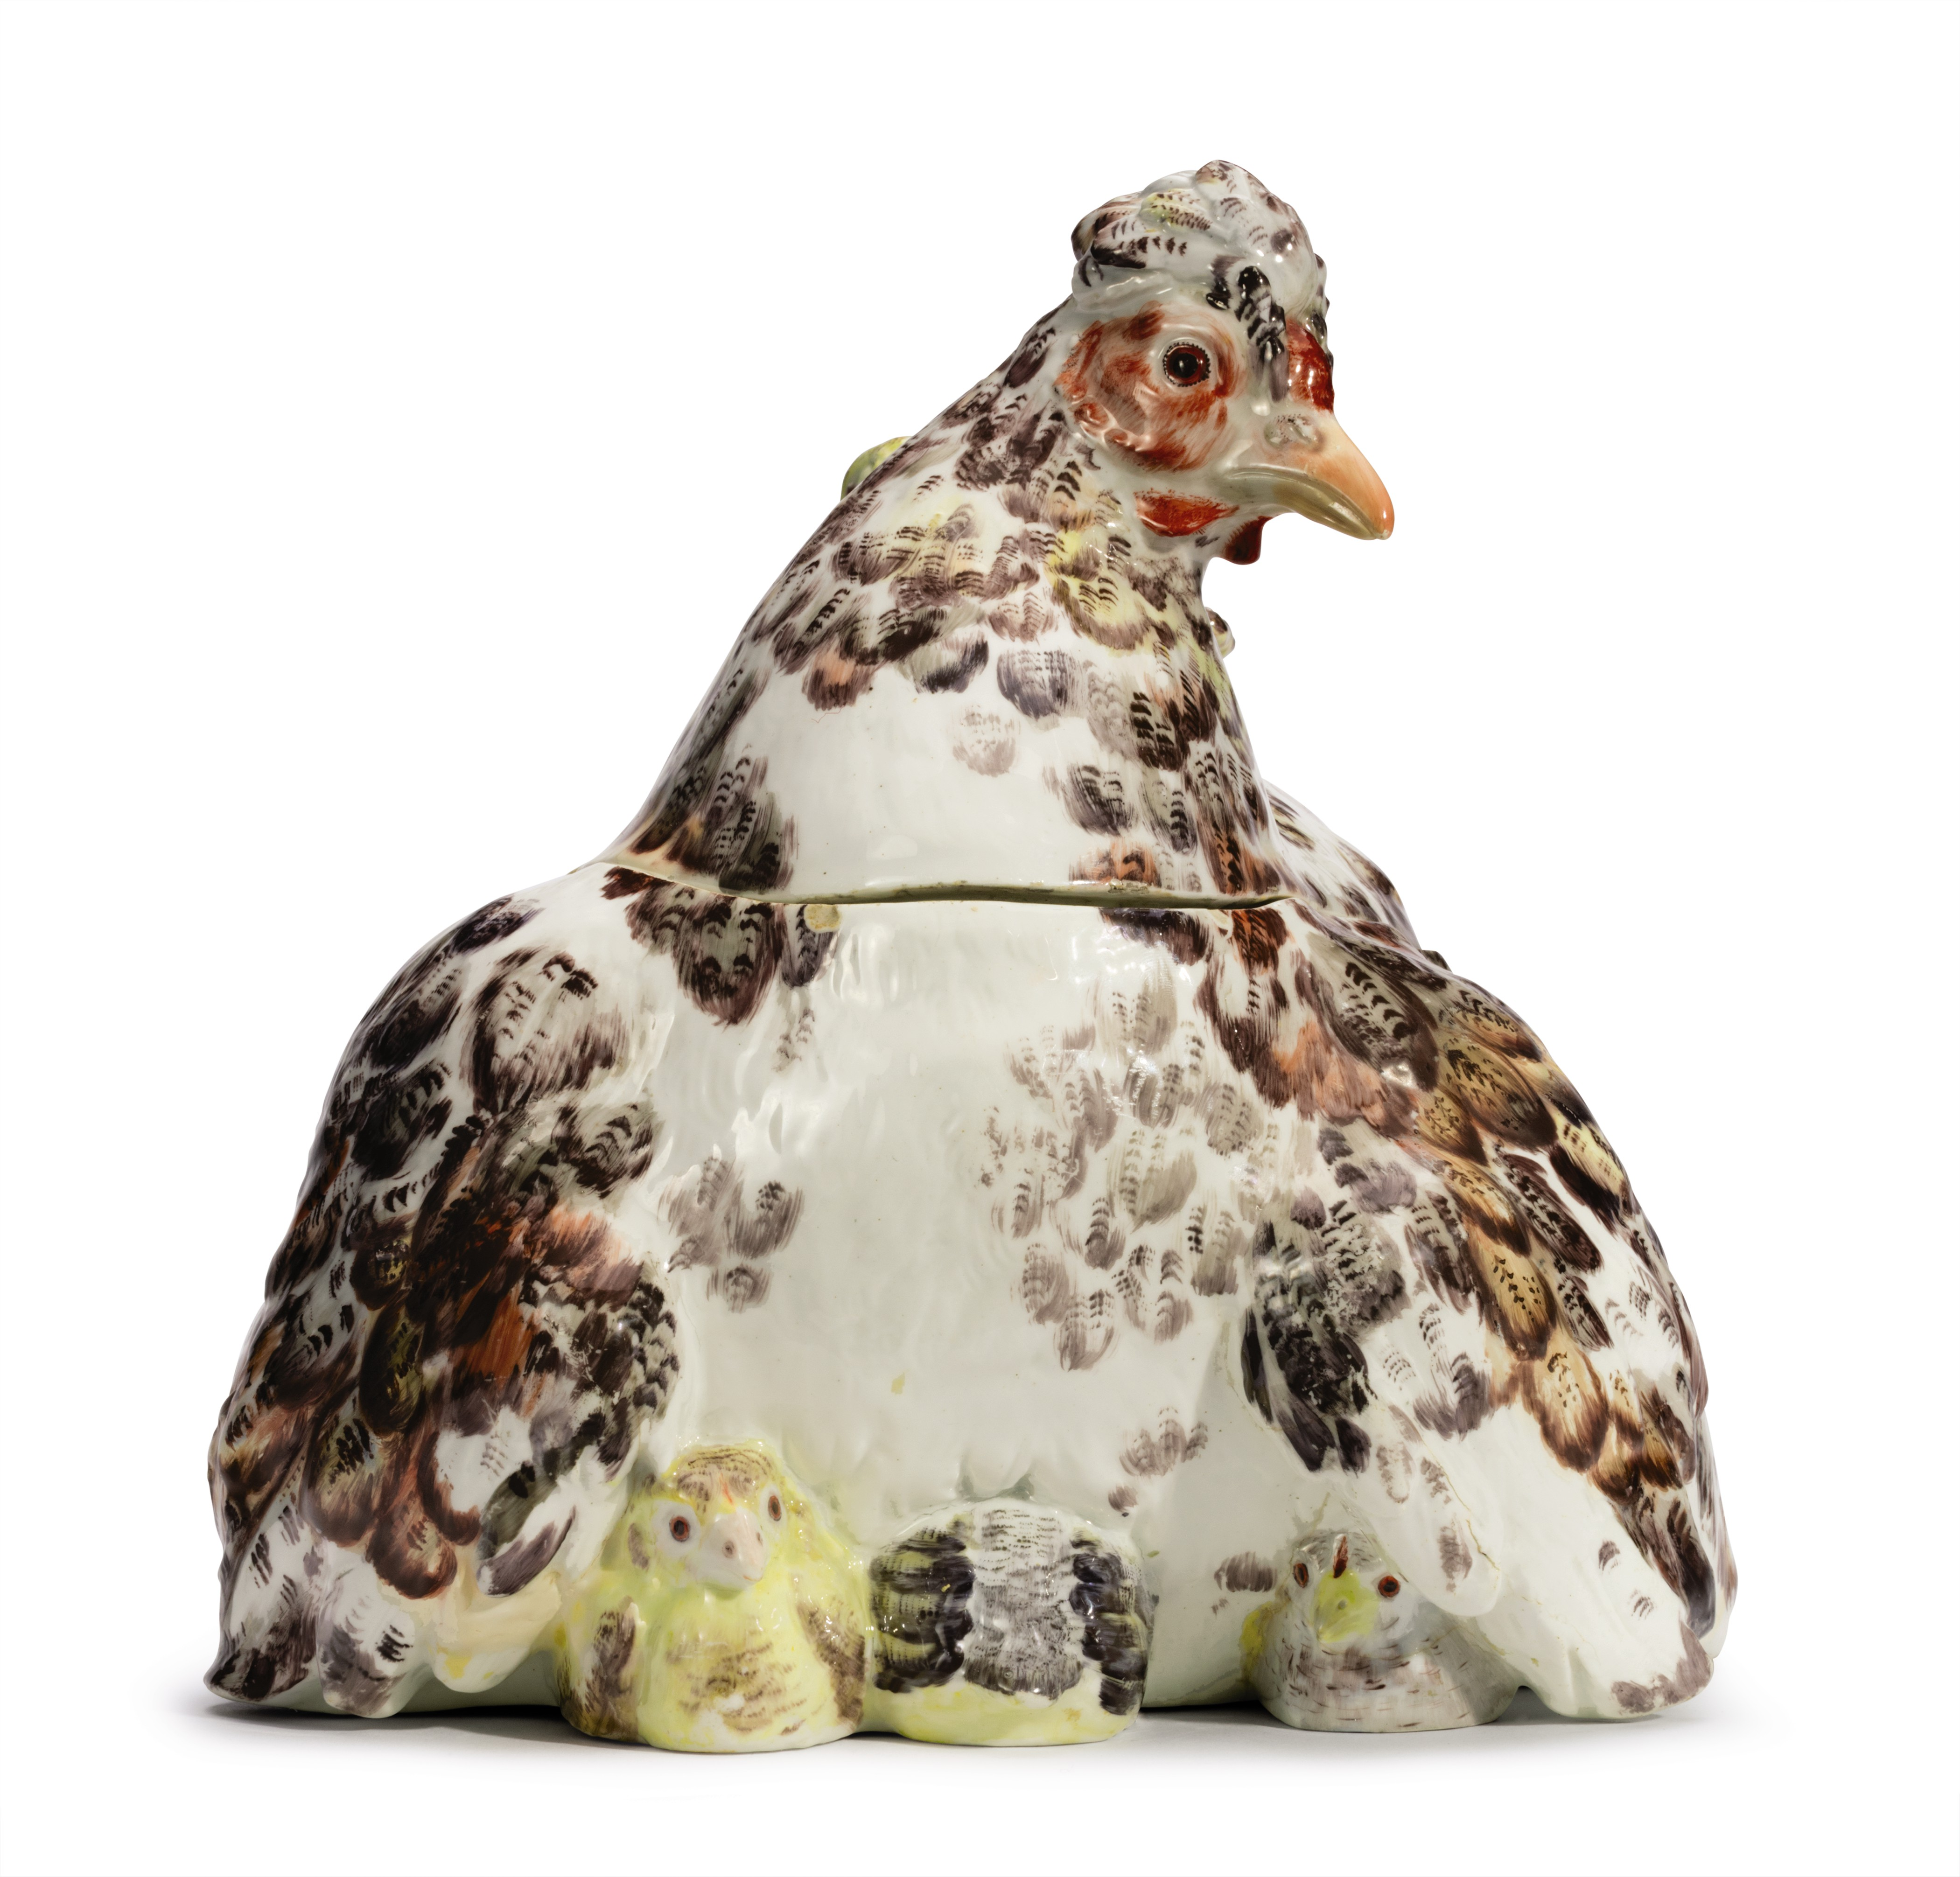 A CHELSEA PORCELAIN 'HEN AND CHICKENS' TUREEN AND COVER